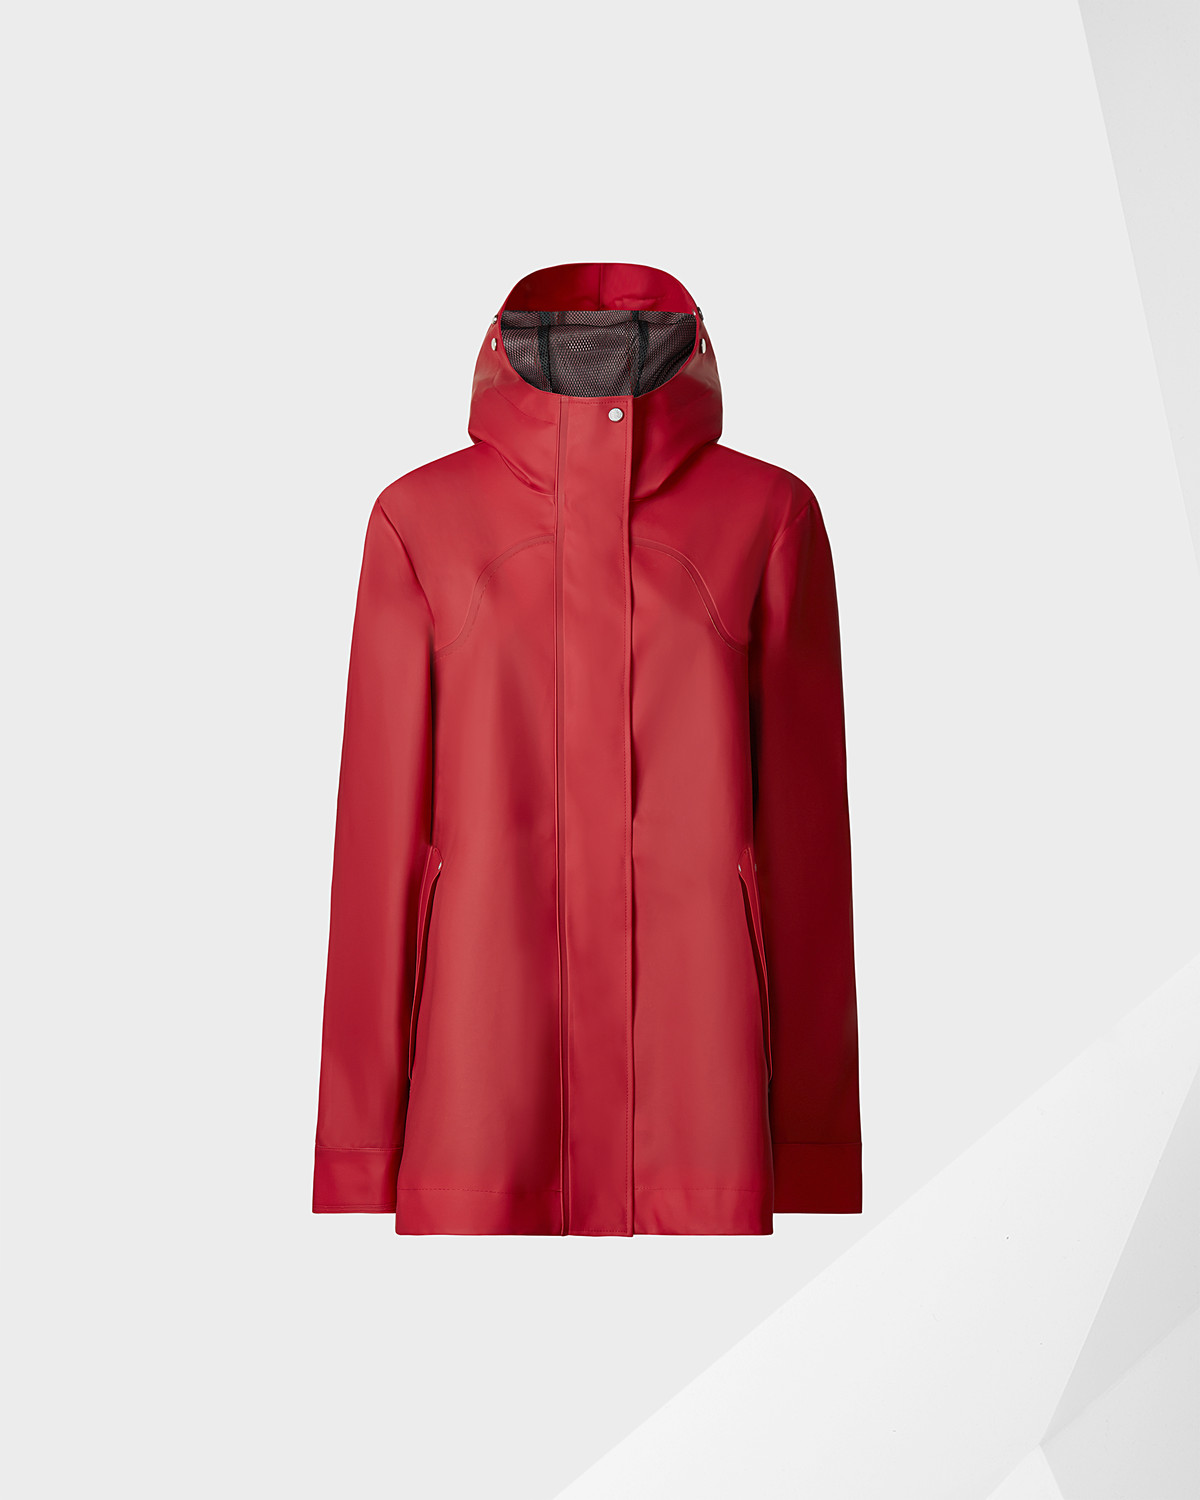 HUNTER - Look stylish in this red women's original rubberised smock, fully waterproof as you would expect from Hunter.